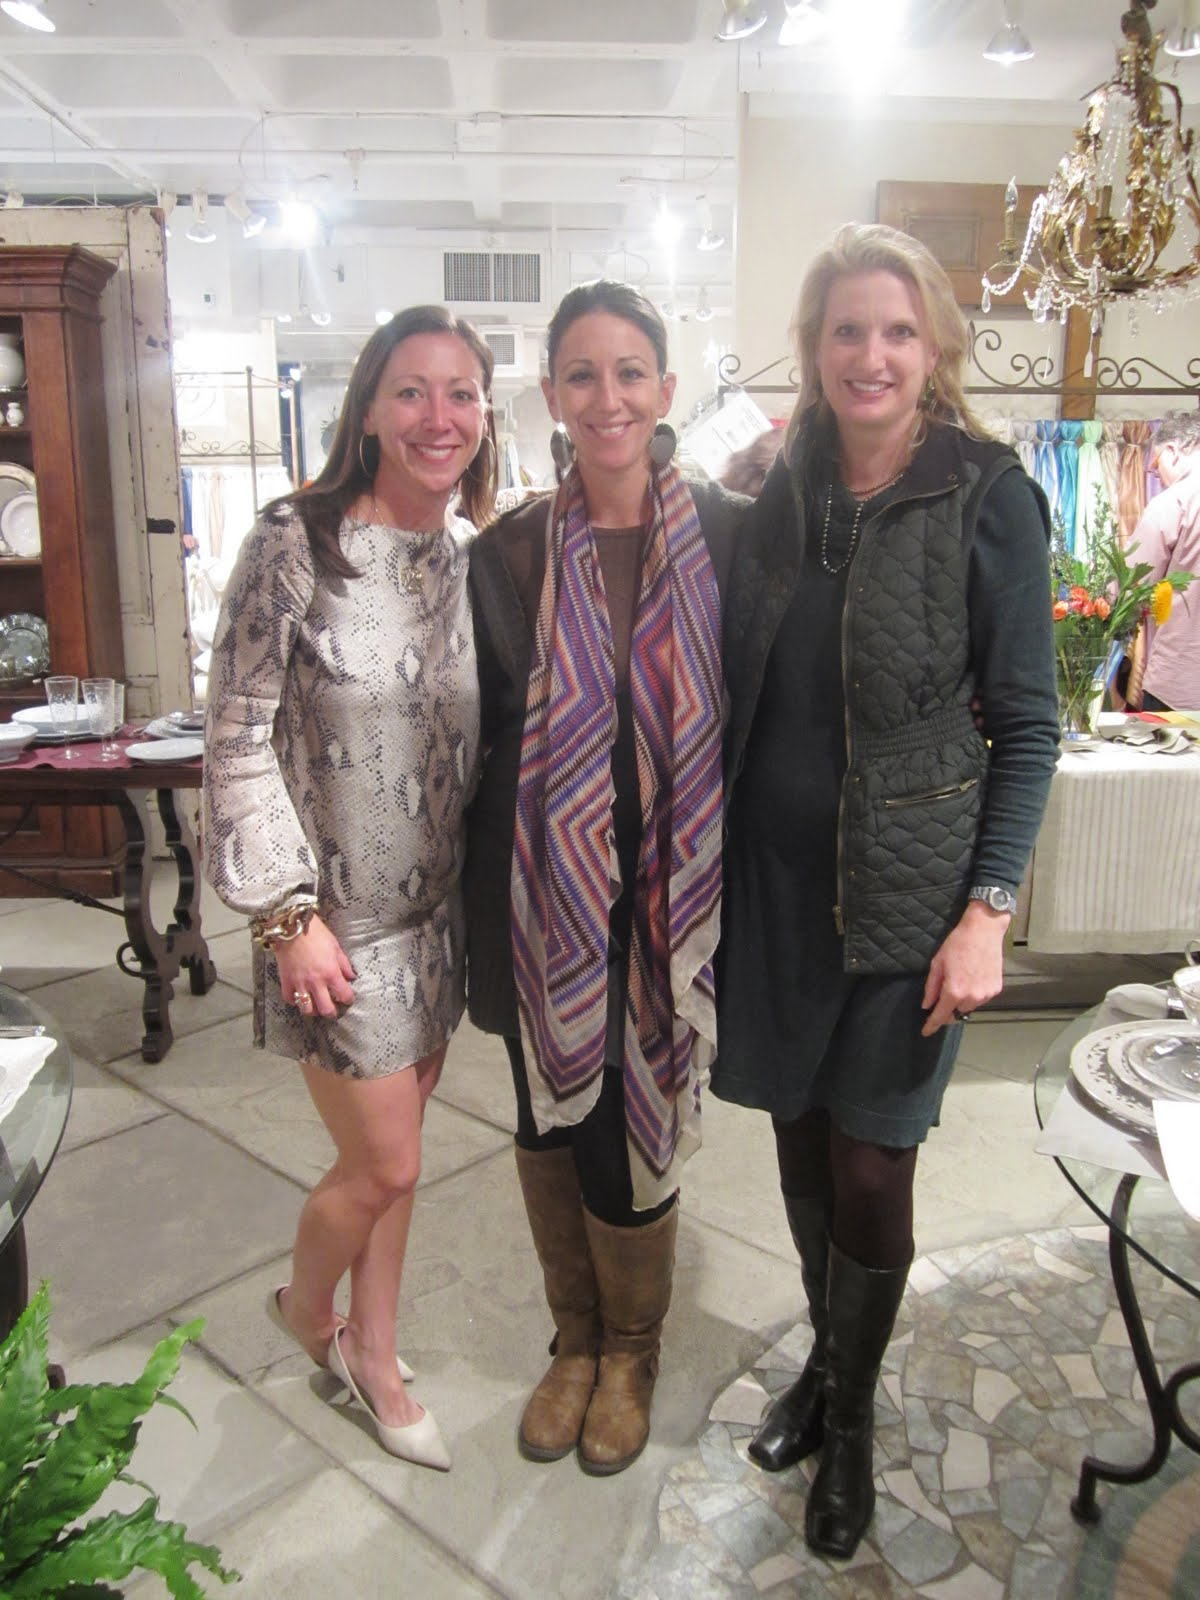 Kendra H Showroom Manager Nicole W And Owner Laura Mosso Take A Moment To Catch Up During The Busy Day Above